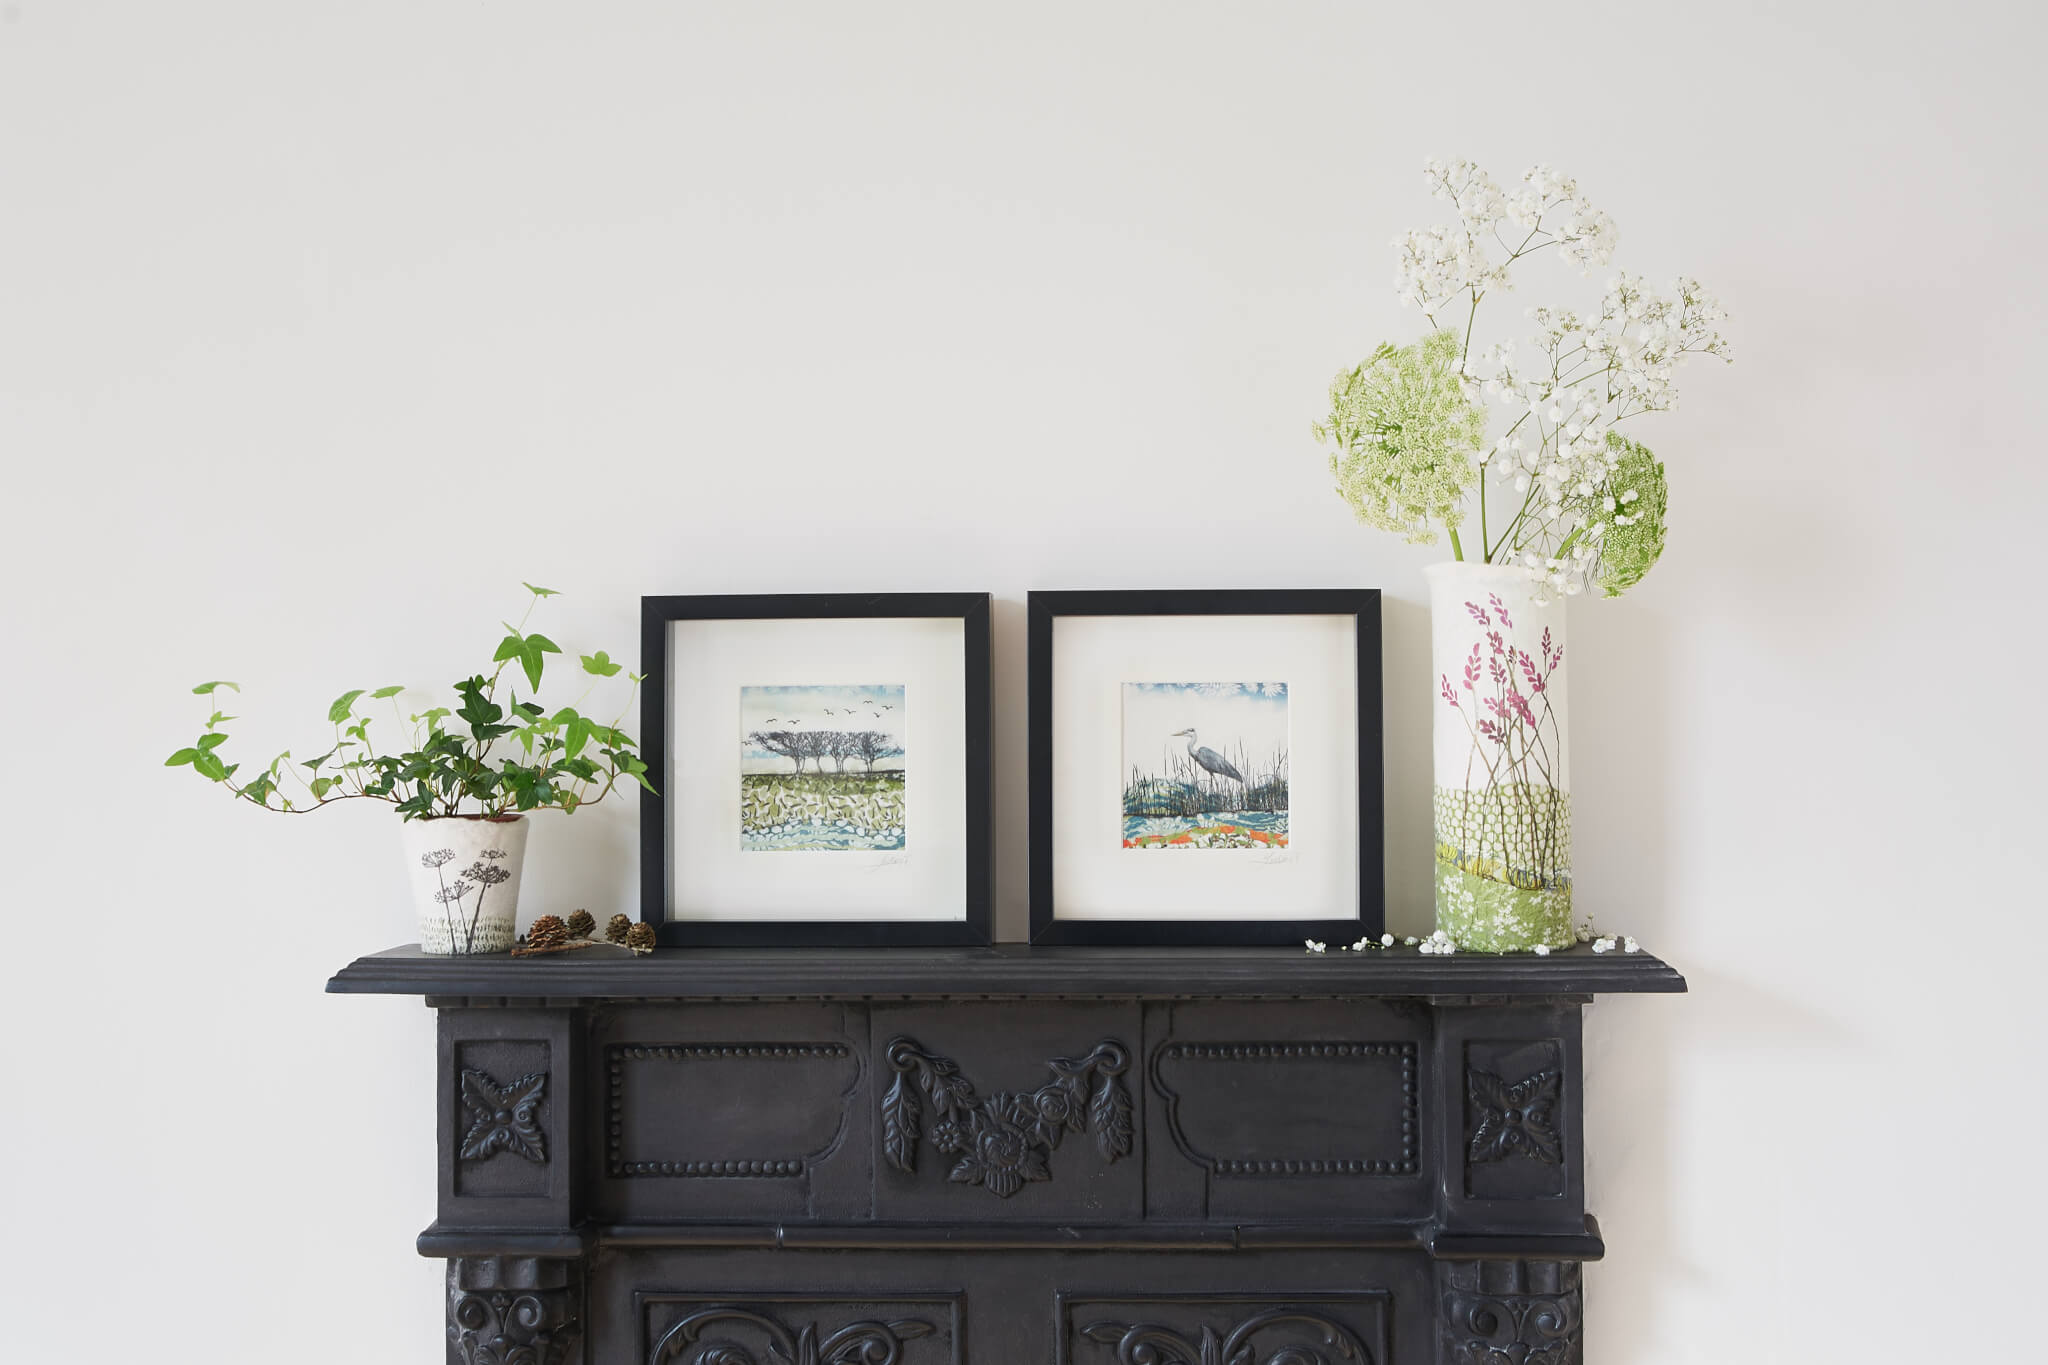 The studio fireplace with Lindsey Tyson's work on the mantlepiece